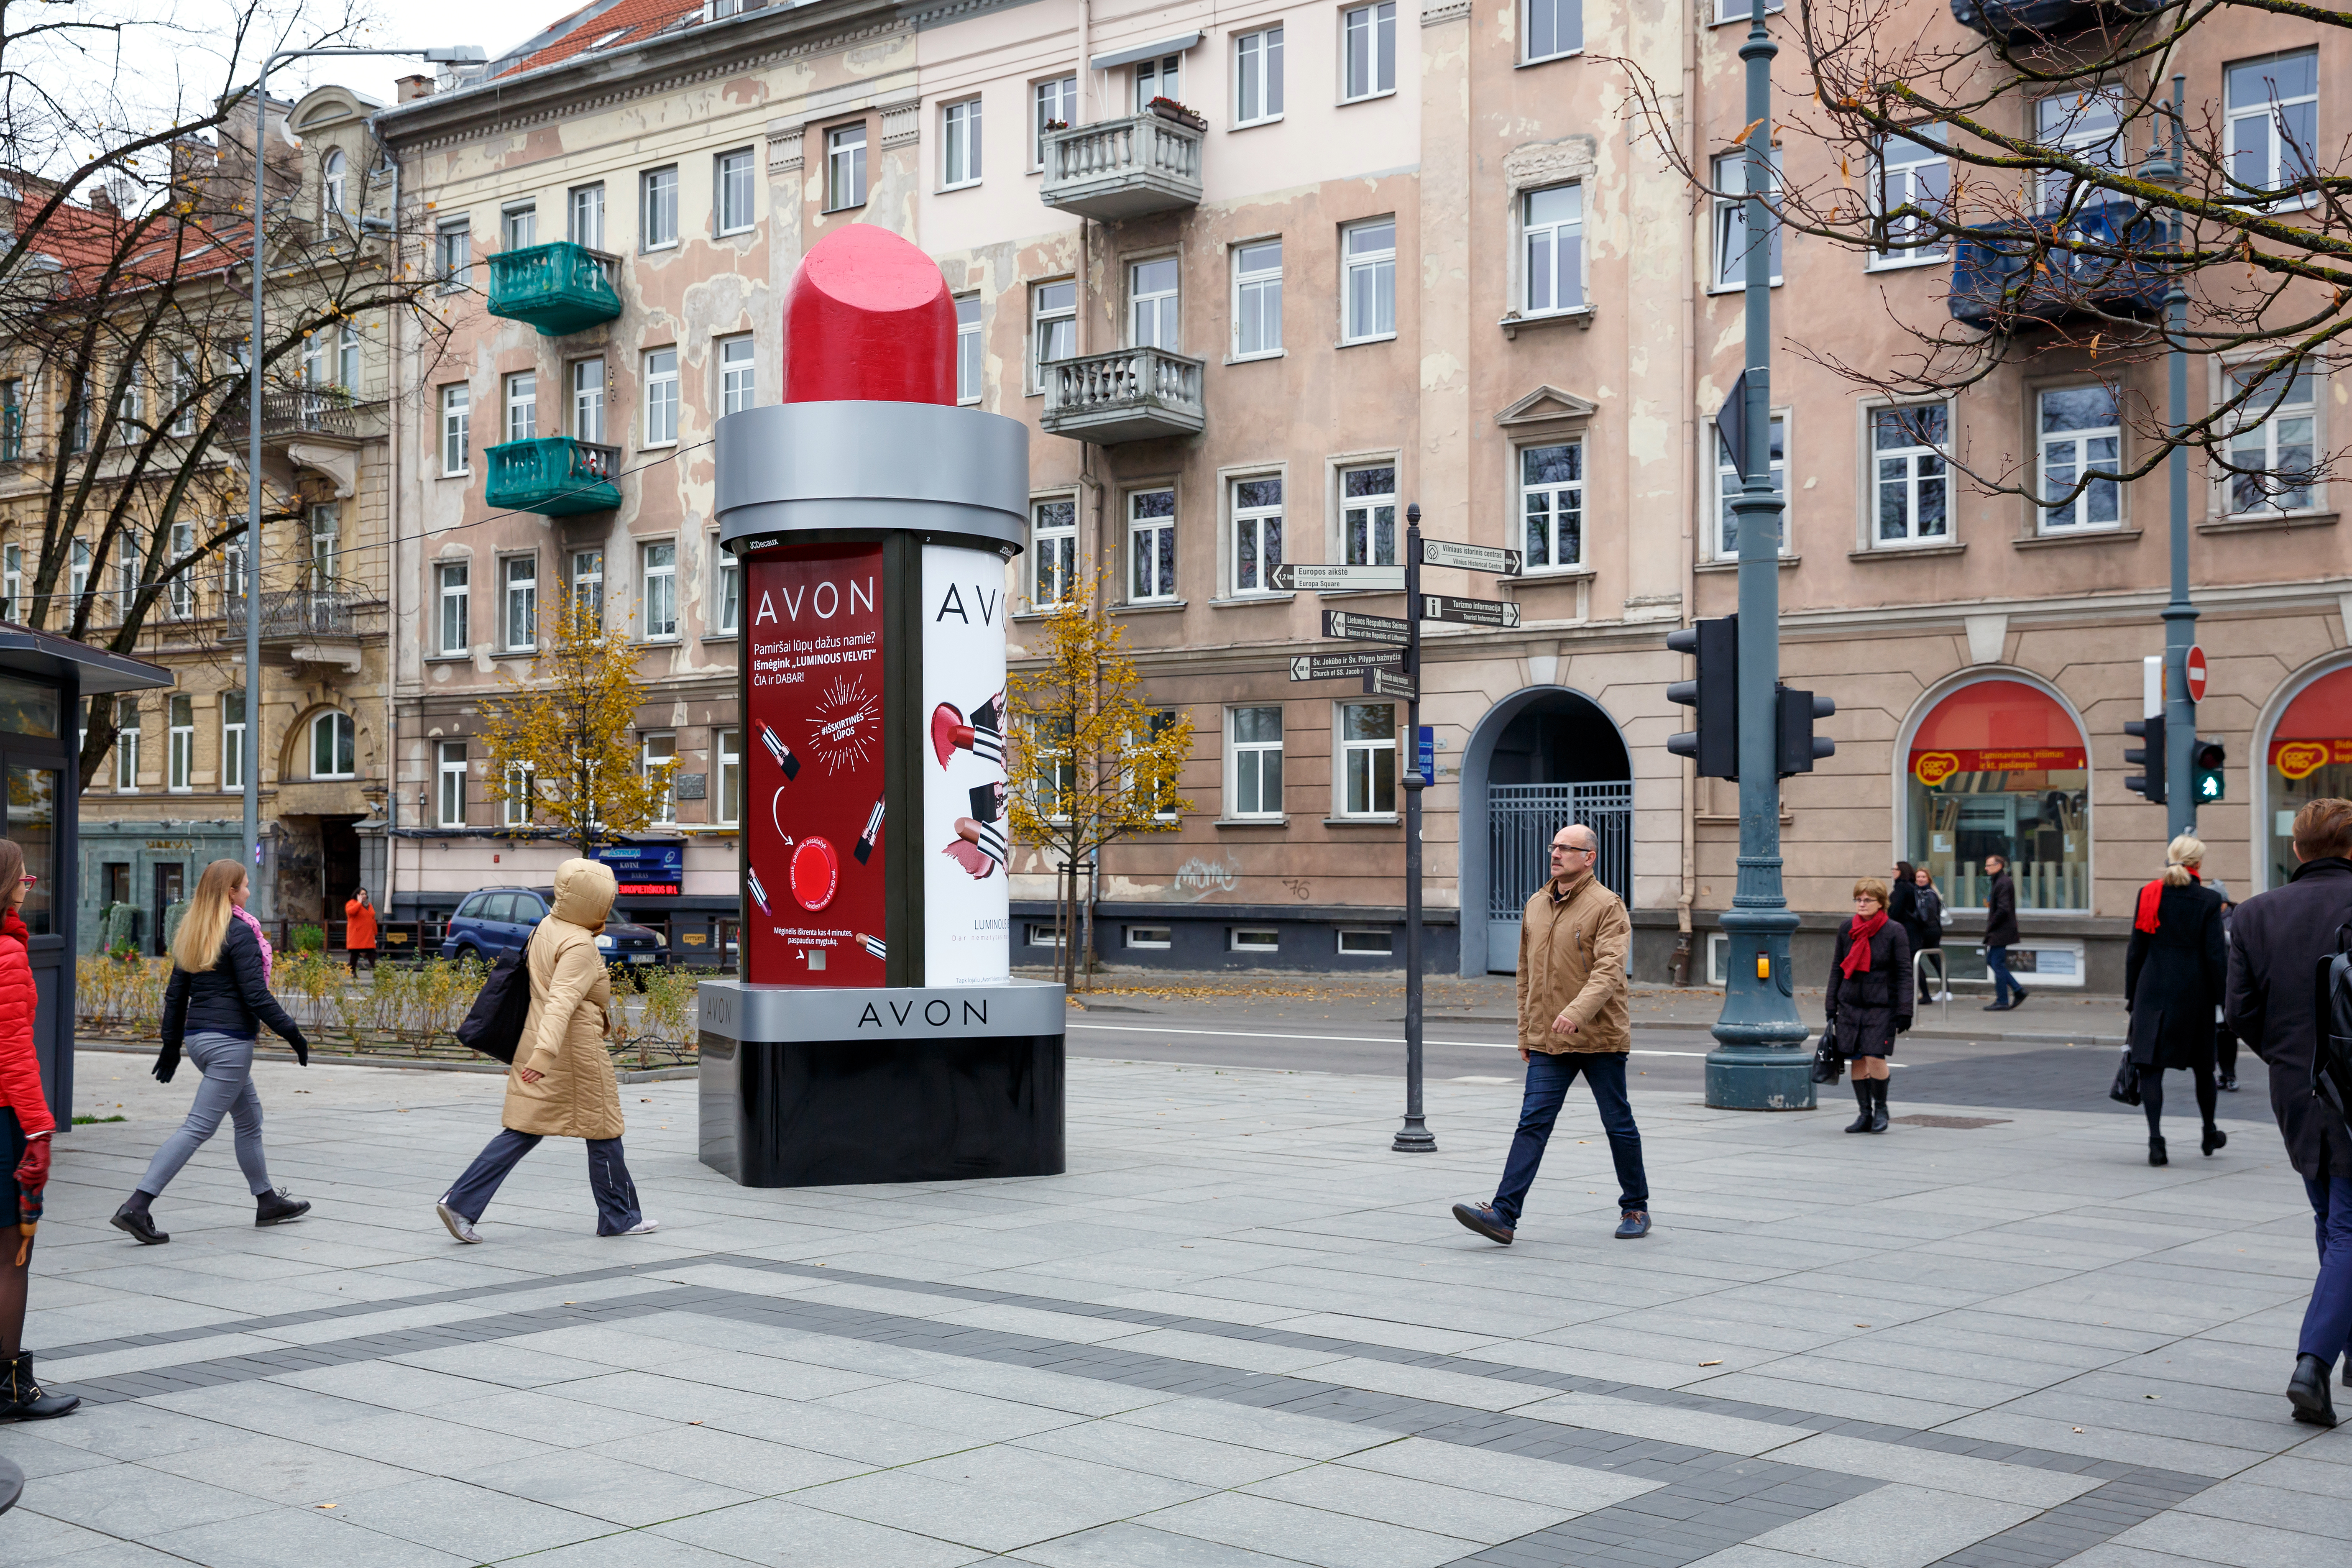 Avon cosmetics JCDecaux Lithuania campaign